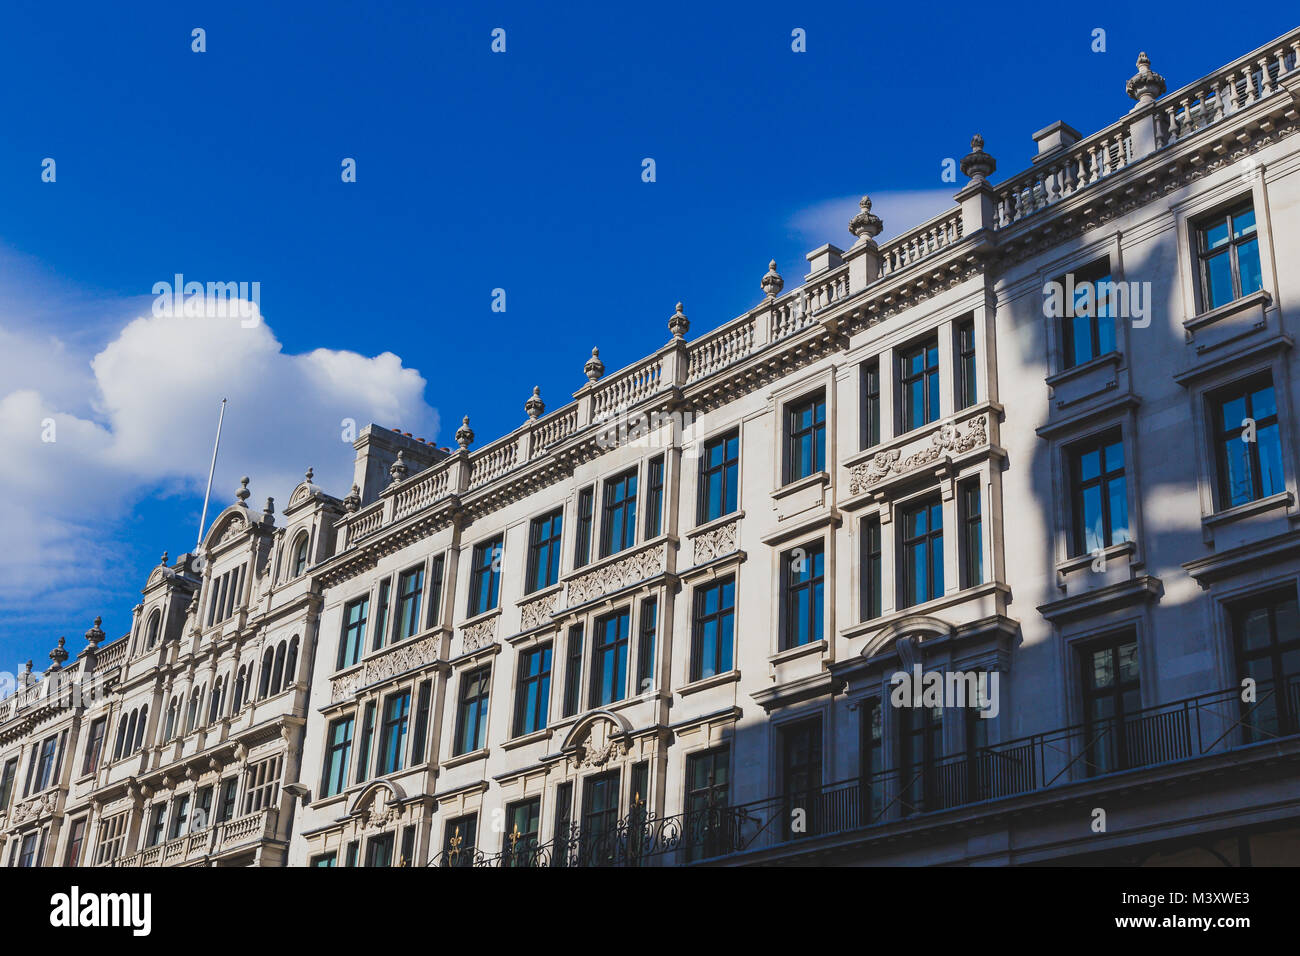 LONDON, UNITED KINGDOM - August, 22th, 2015: detail of Regent Street in central London under a vibrant sky - Stock Image